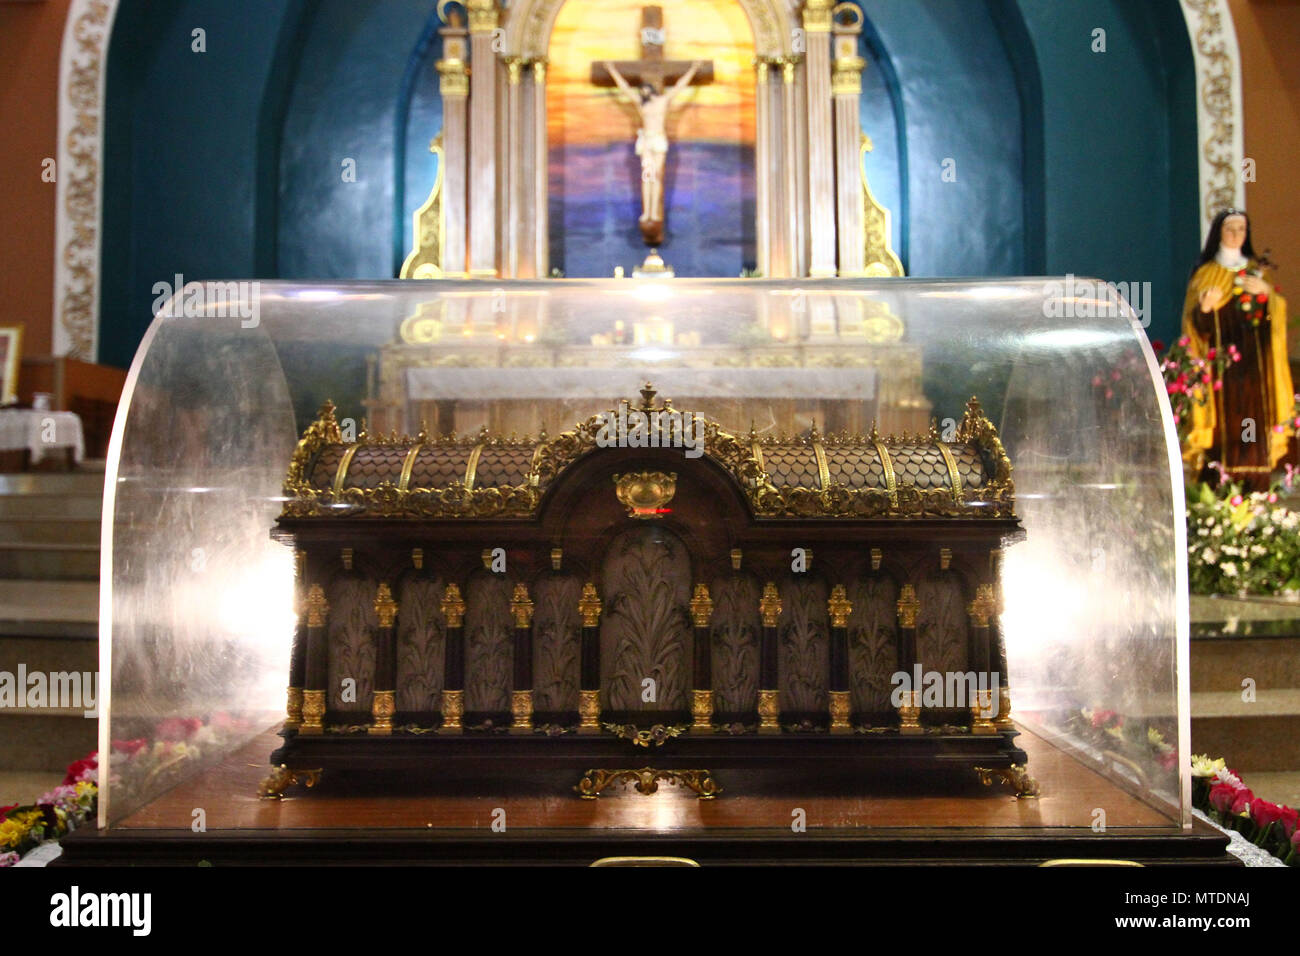 A view of the Shrine of Saint Therese of the Child Jesus in New Port City in Pasay, Metro Manila, for the veneration of  the holy relic of Saint Therese of Lisieux. The reliquary containing the bones of Saint Therese has been on a nation wide tour and is on its last few days in Manila before heading back to France. - Stock Image